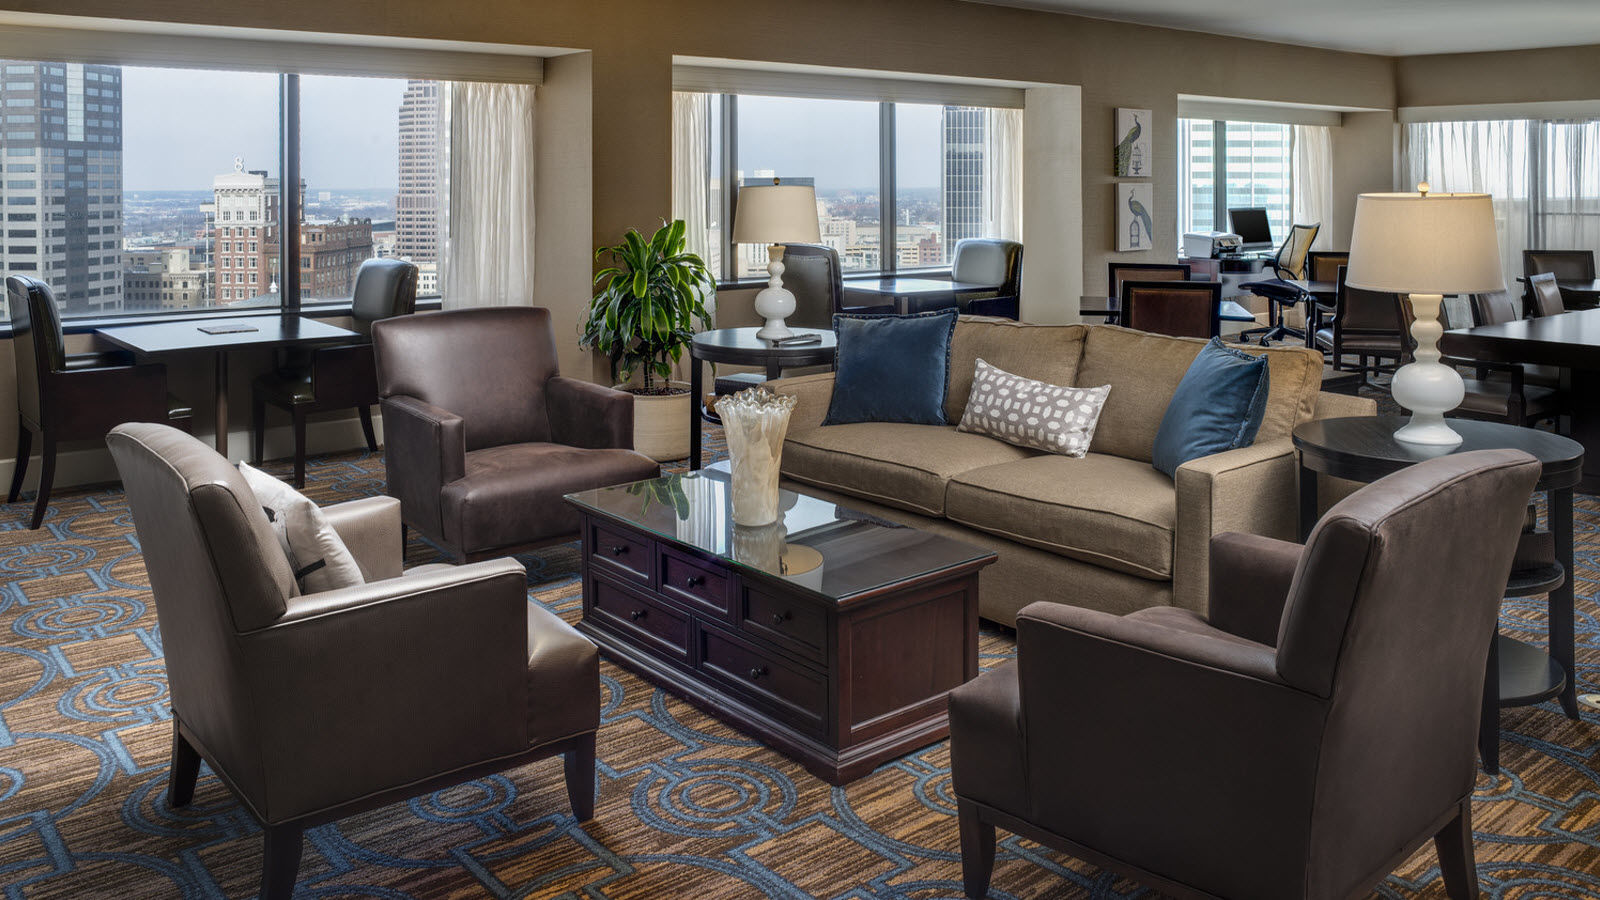 Columbus accommodations - Sheraton Club Level Room